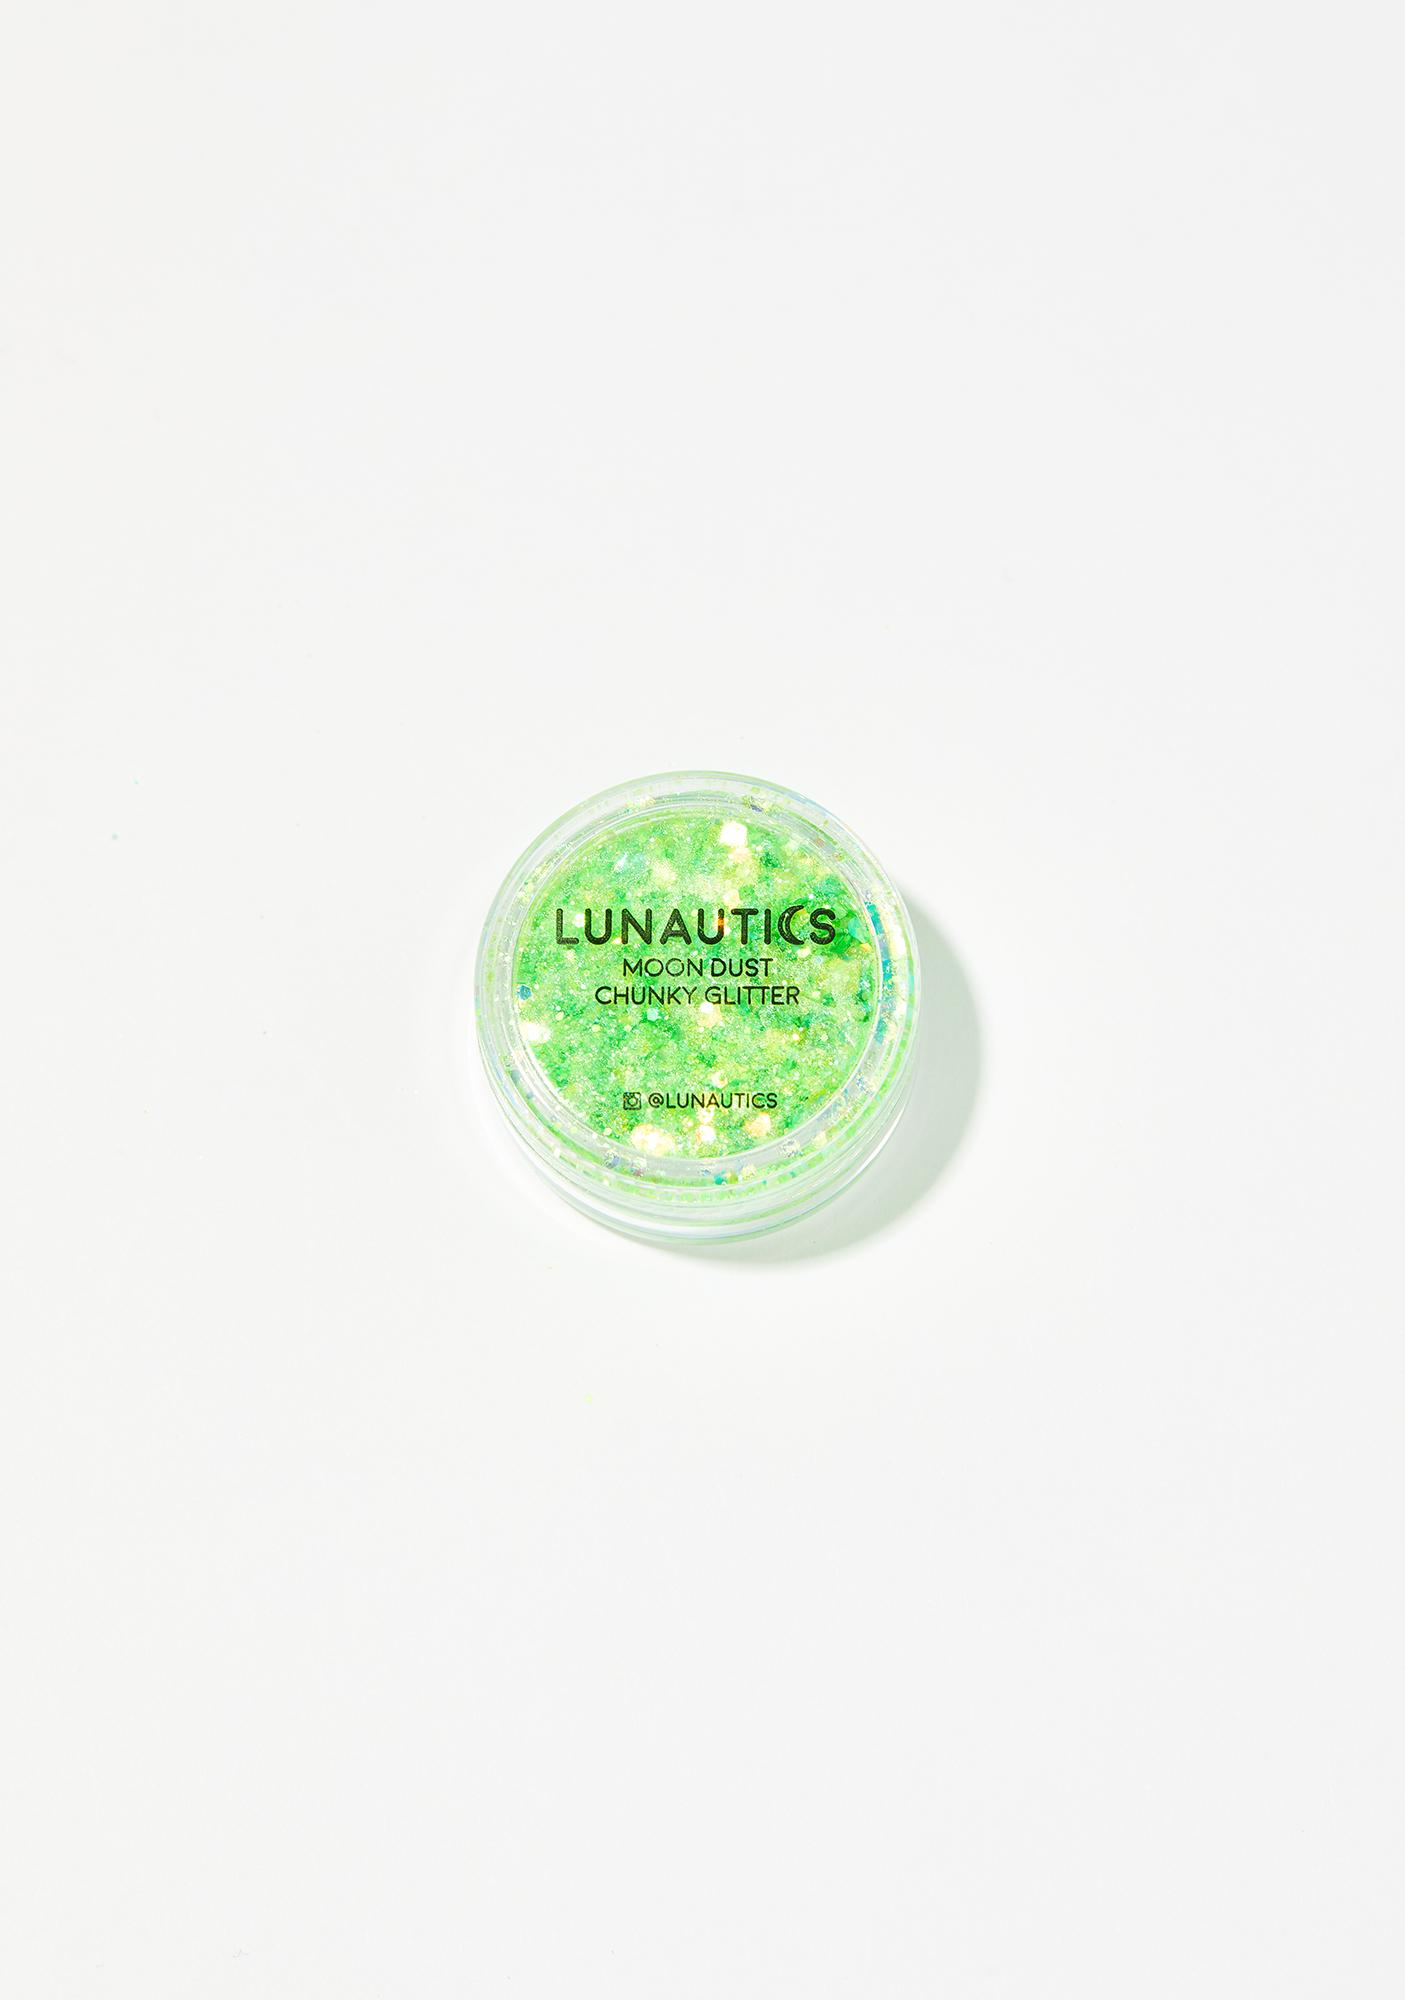 Lunautics Slime Moon Dust UV Reactive Glitter